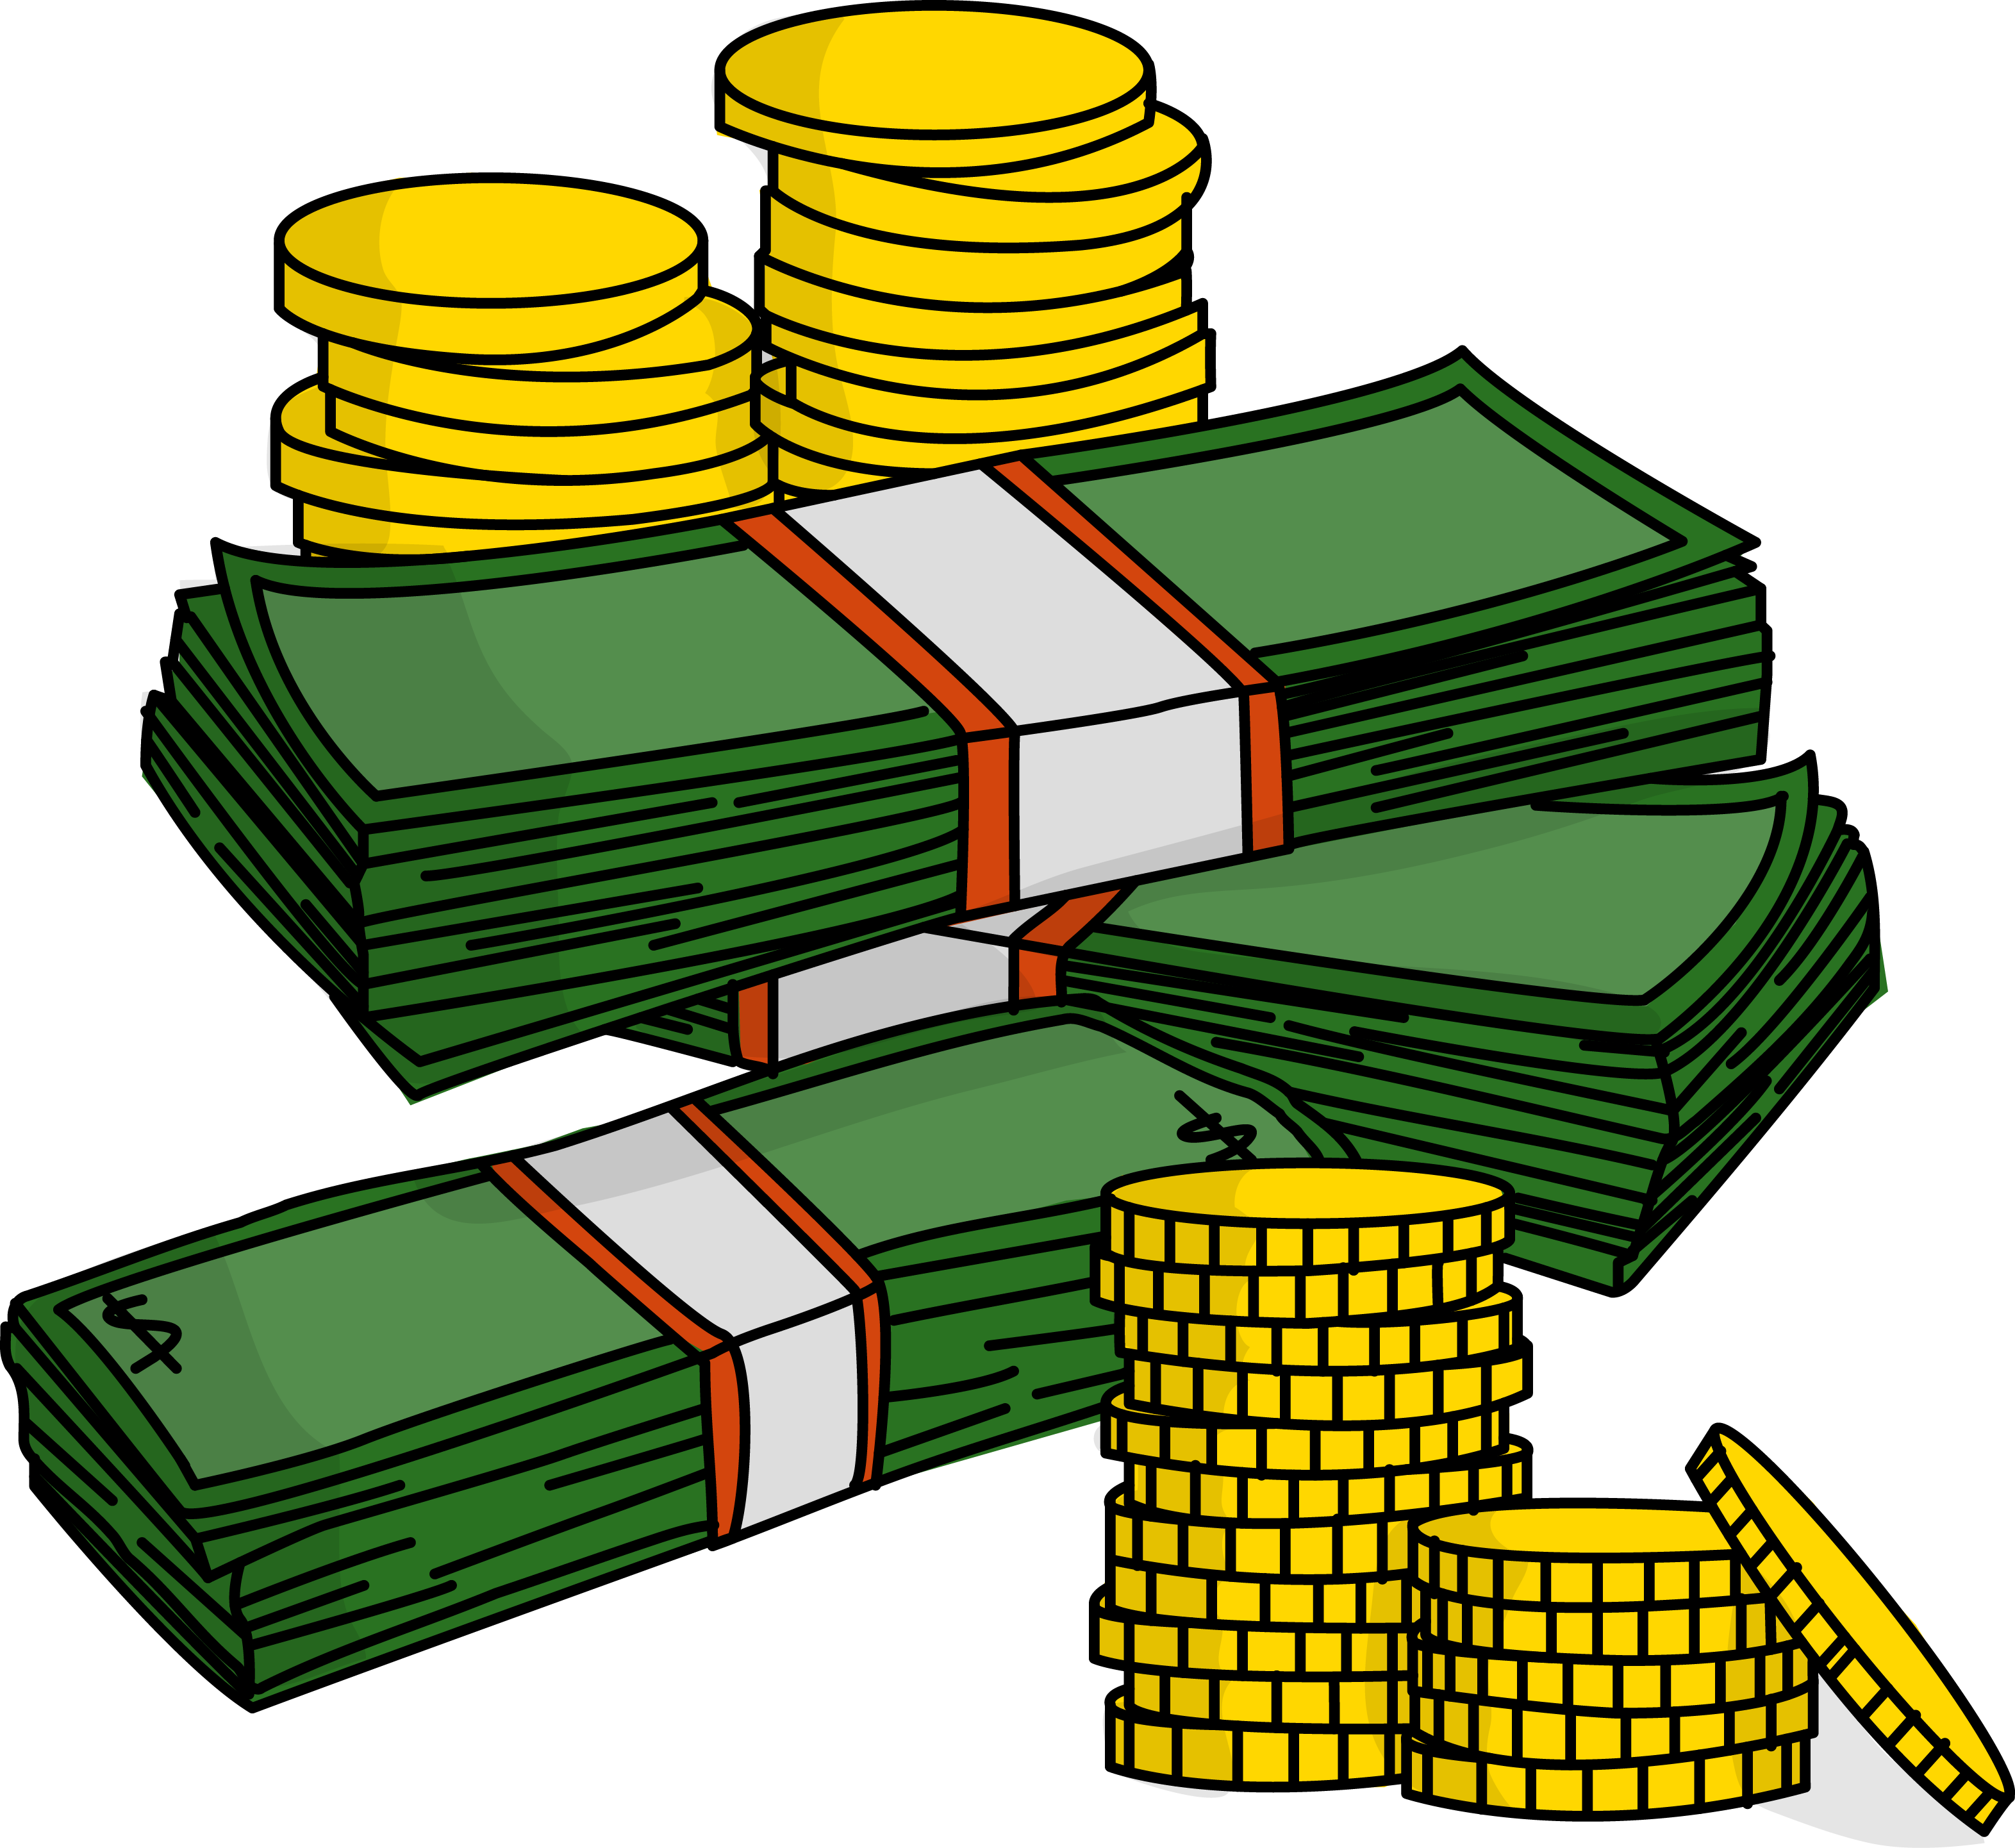 Free Stacks Of Money With Coins High Res-Free Stacks Of Money With Coins High Resolution Clip Art | All .-14